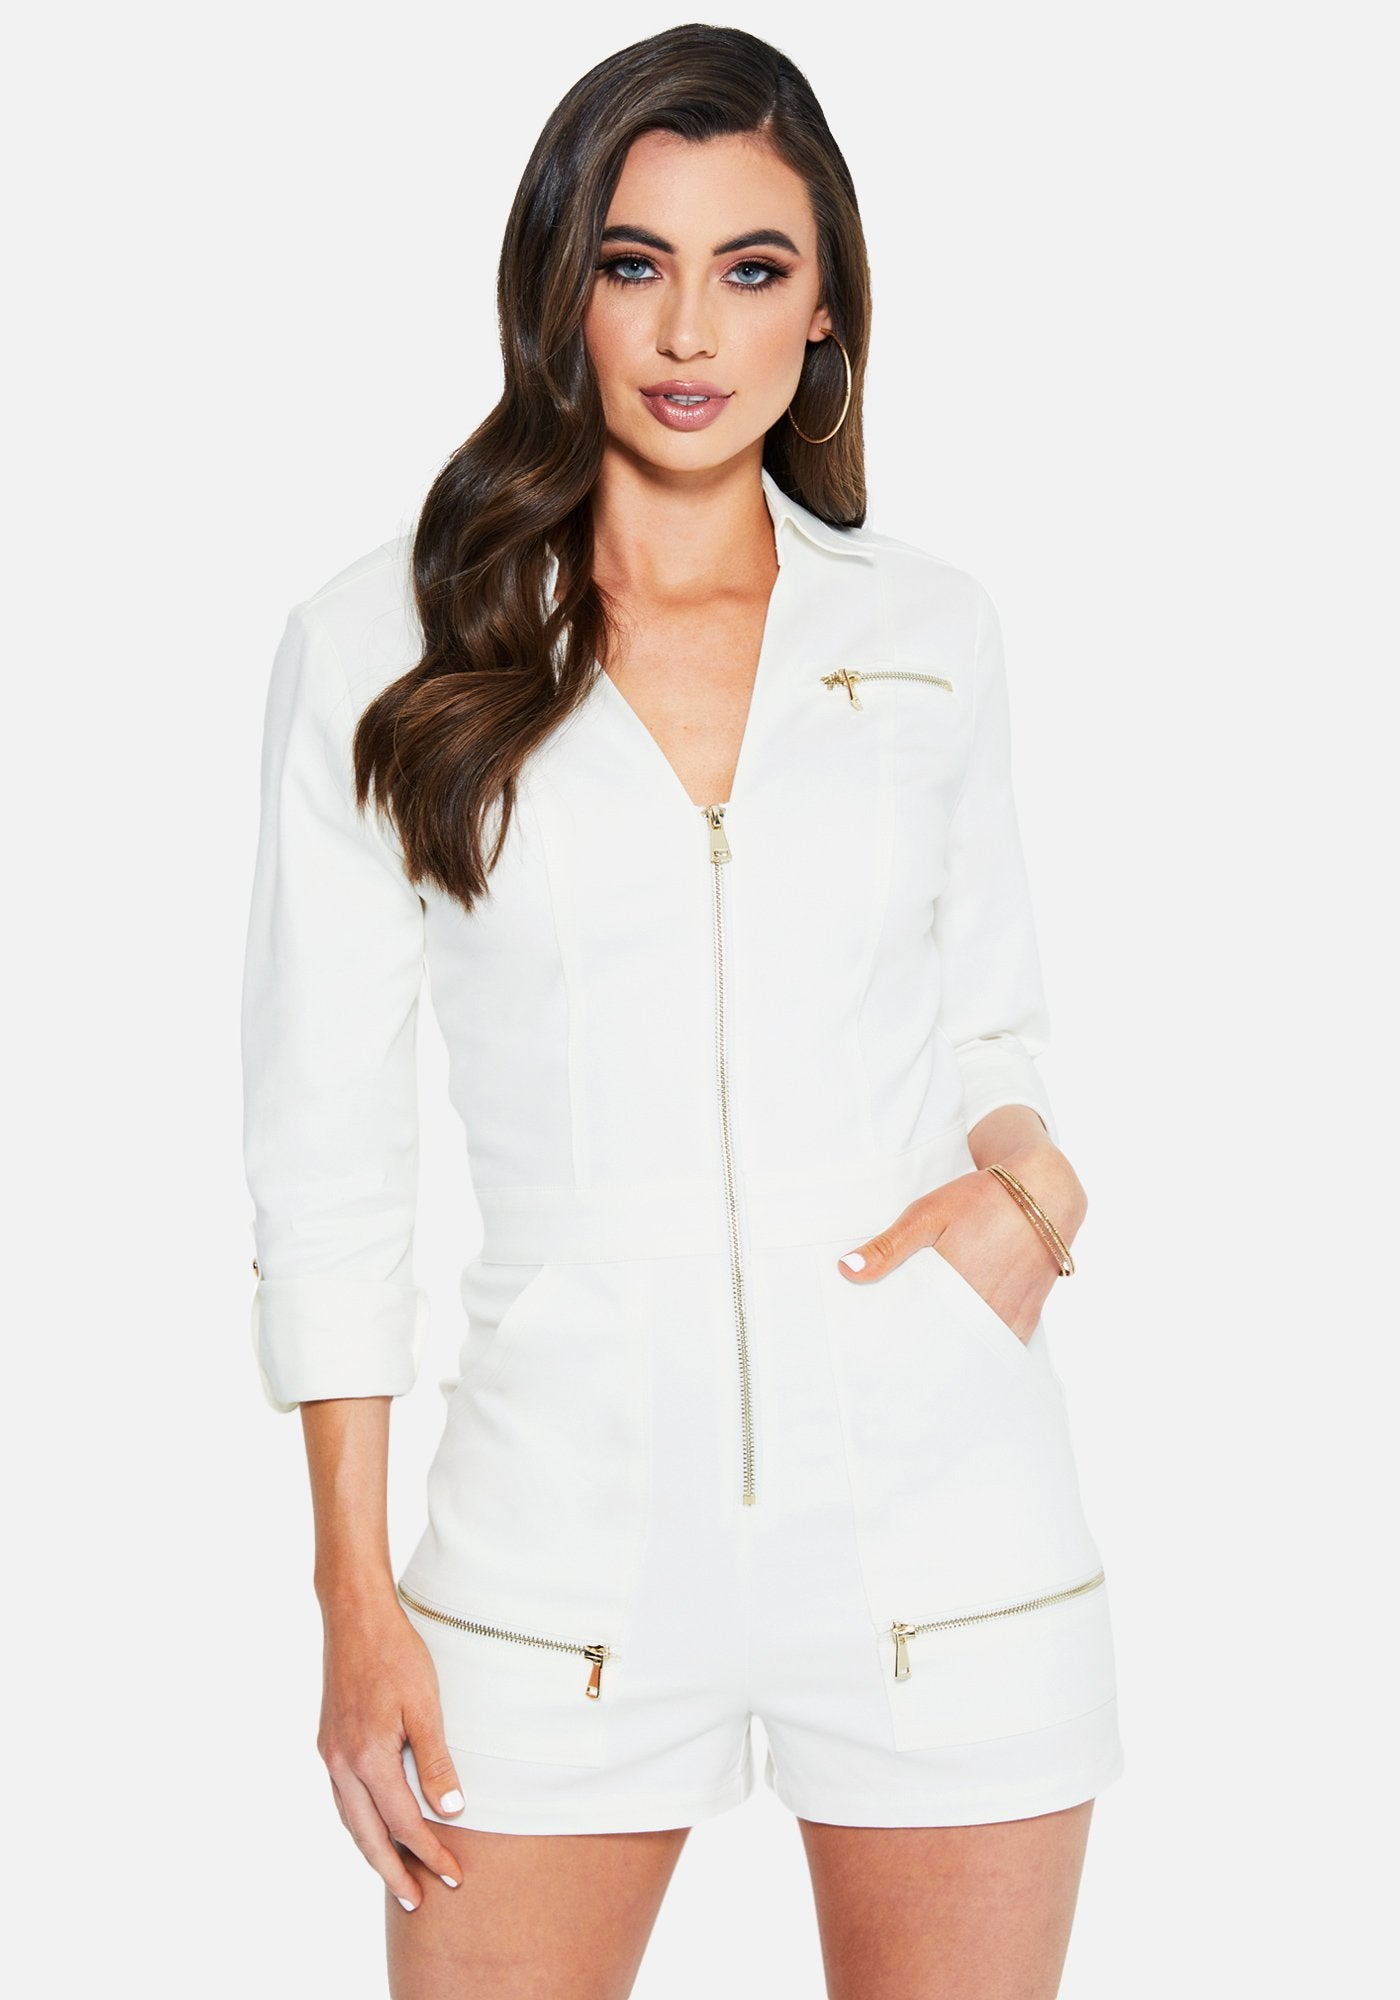 Image of Bebe Women's Zip Up Aviator Romper, Size Medium in BRIGHT WHITE Cotton/Spandex